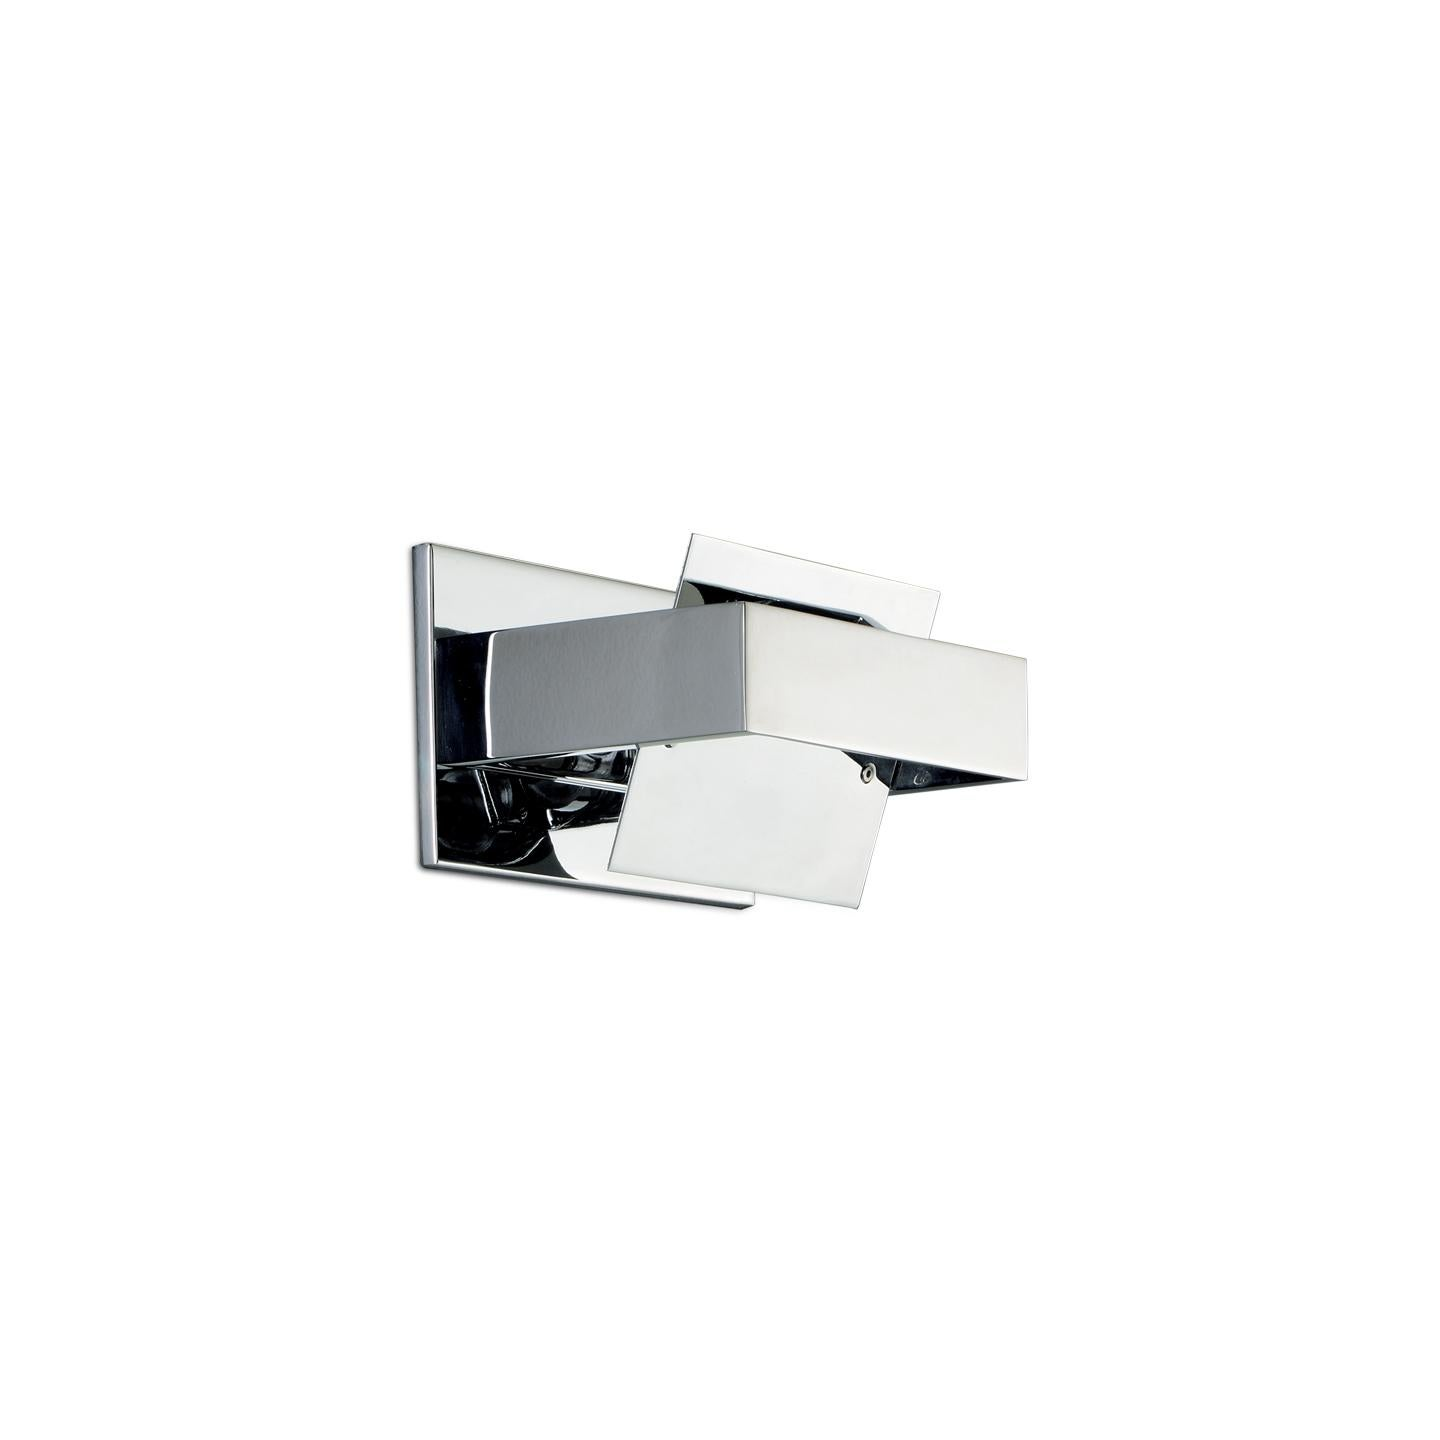 Leucos Ala P 16 Wall Sconce in Chrome and Chrome by Mauro Marzollo